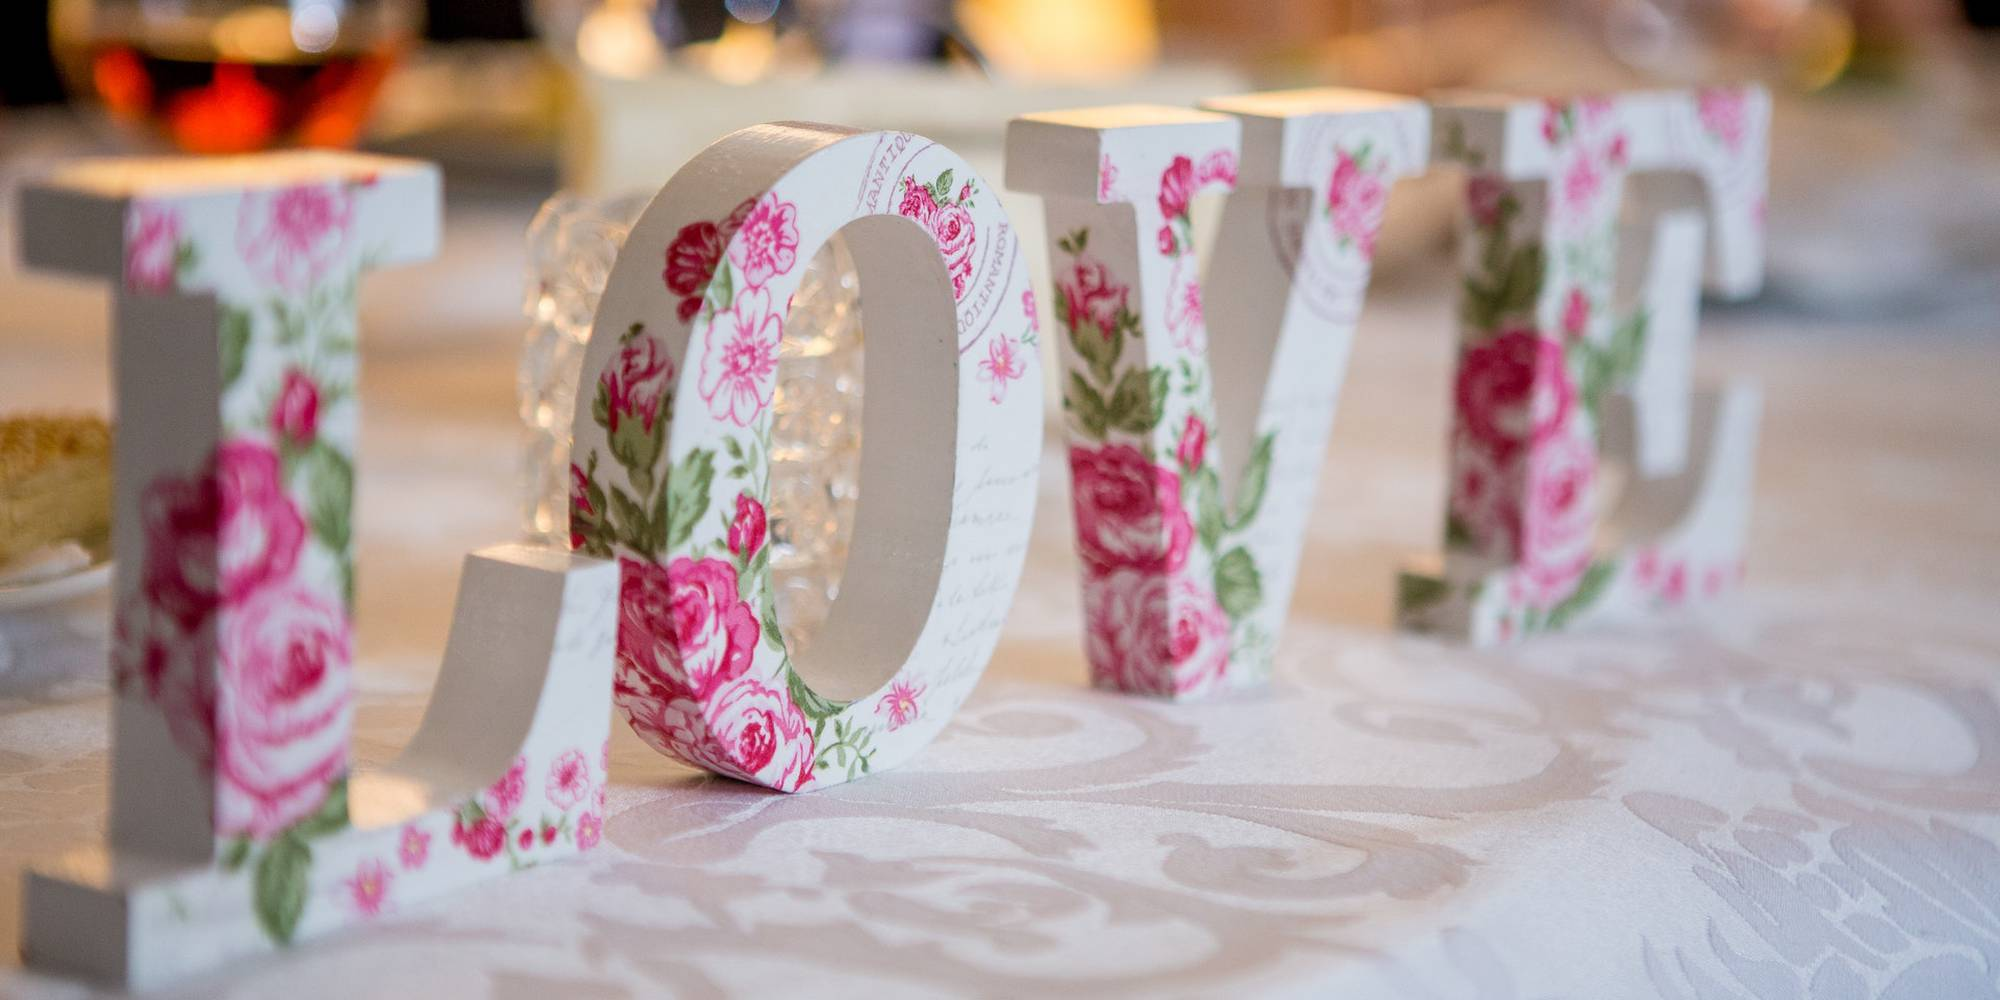 white-and-pink-floral-freestanding-letter-decor-949586.jpg